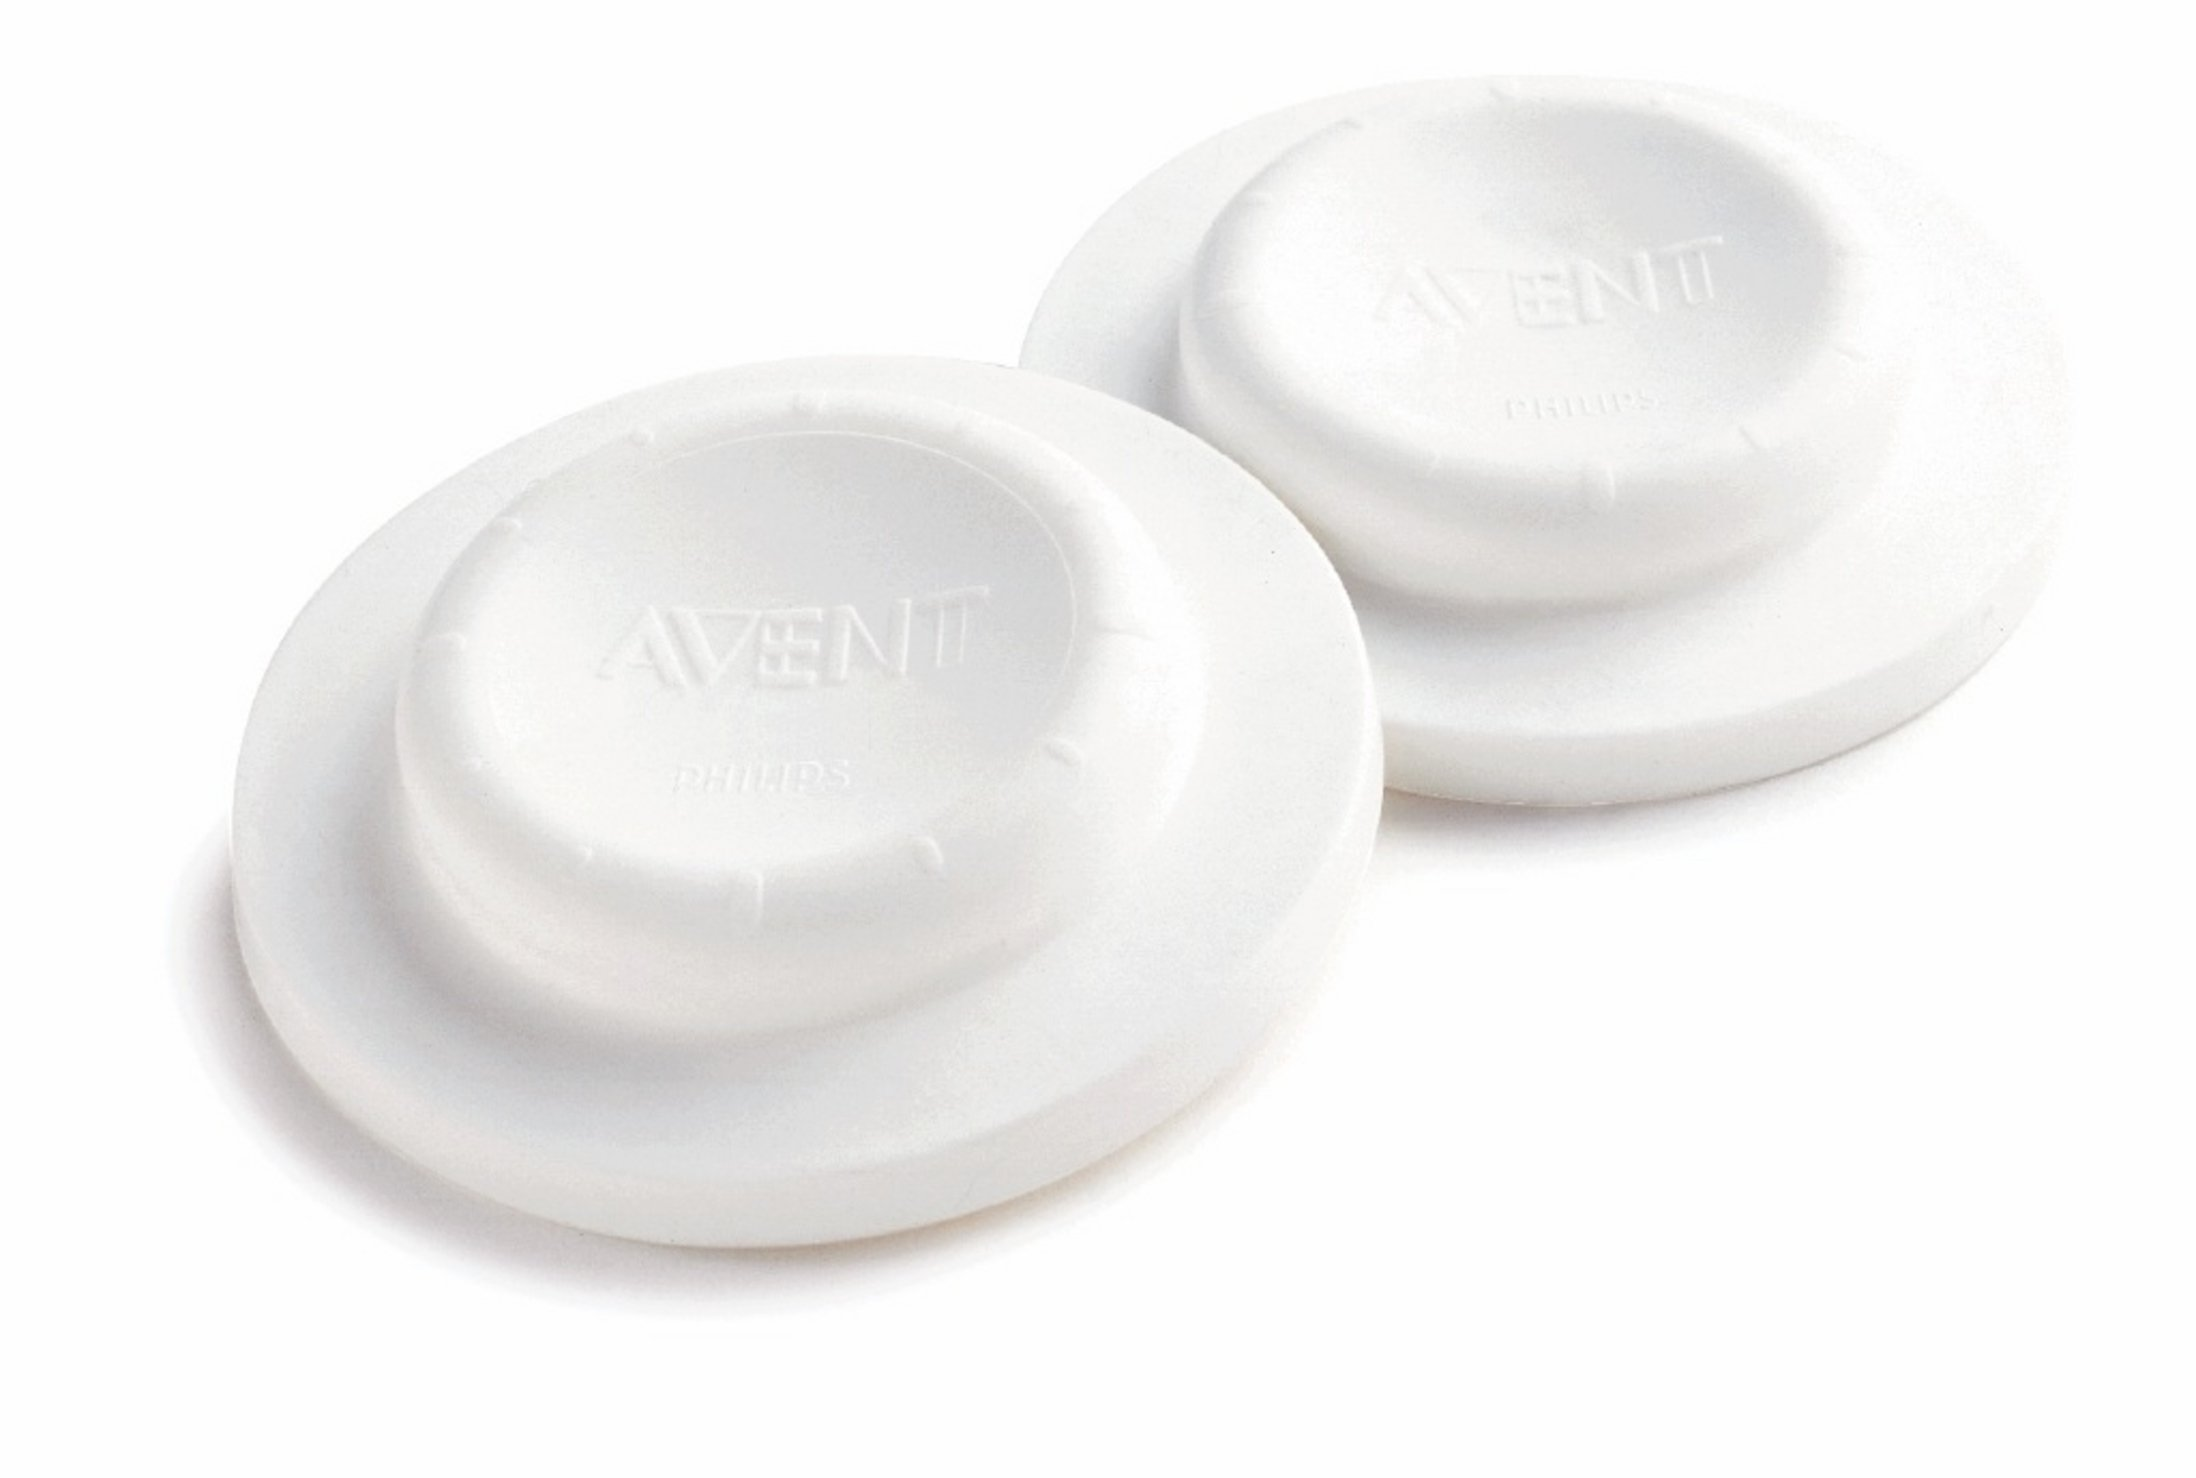 Philips Avent 6 Sealing Discs 6 pack, SCF143/06, 6 count